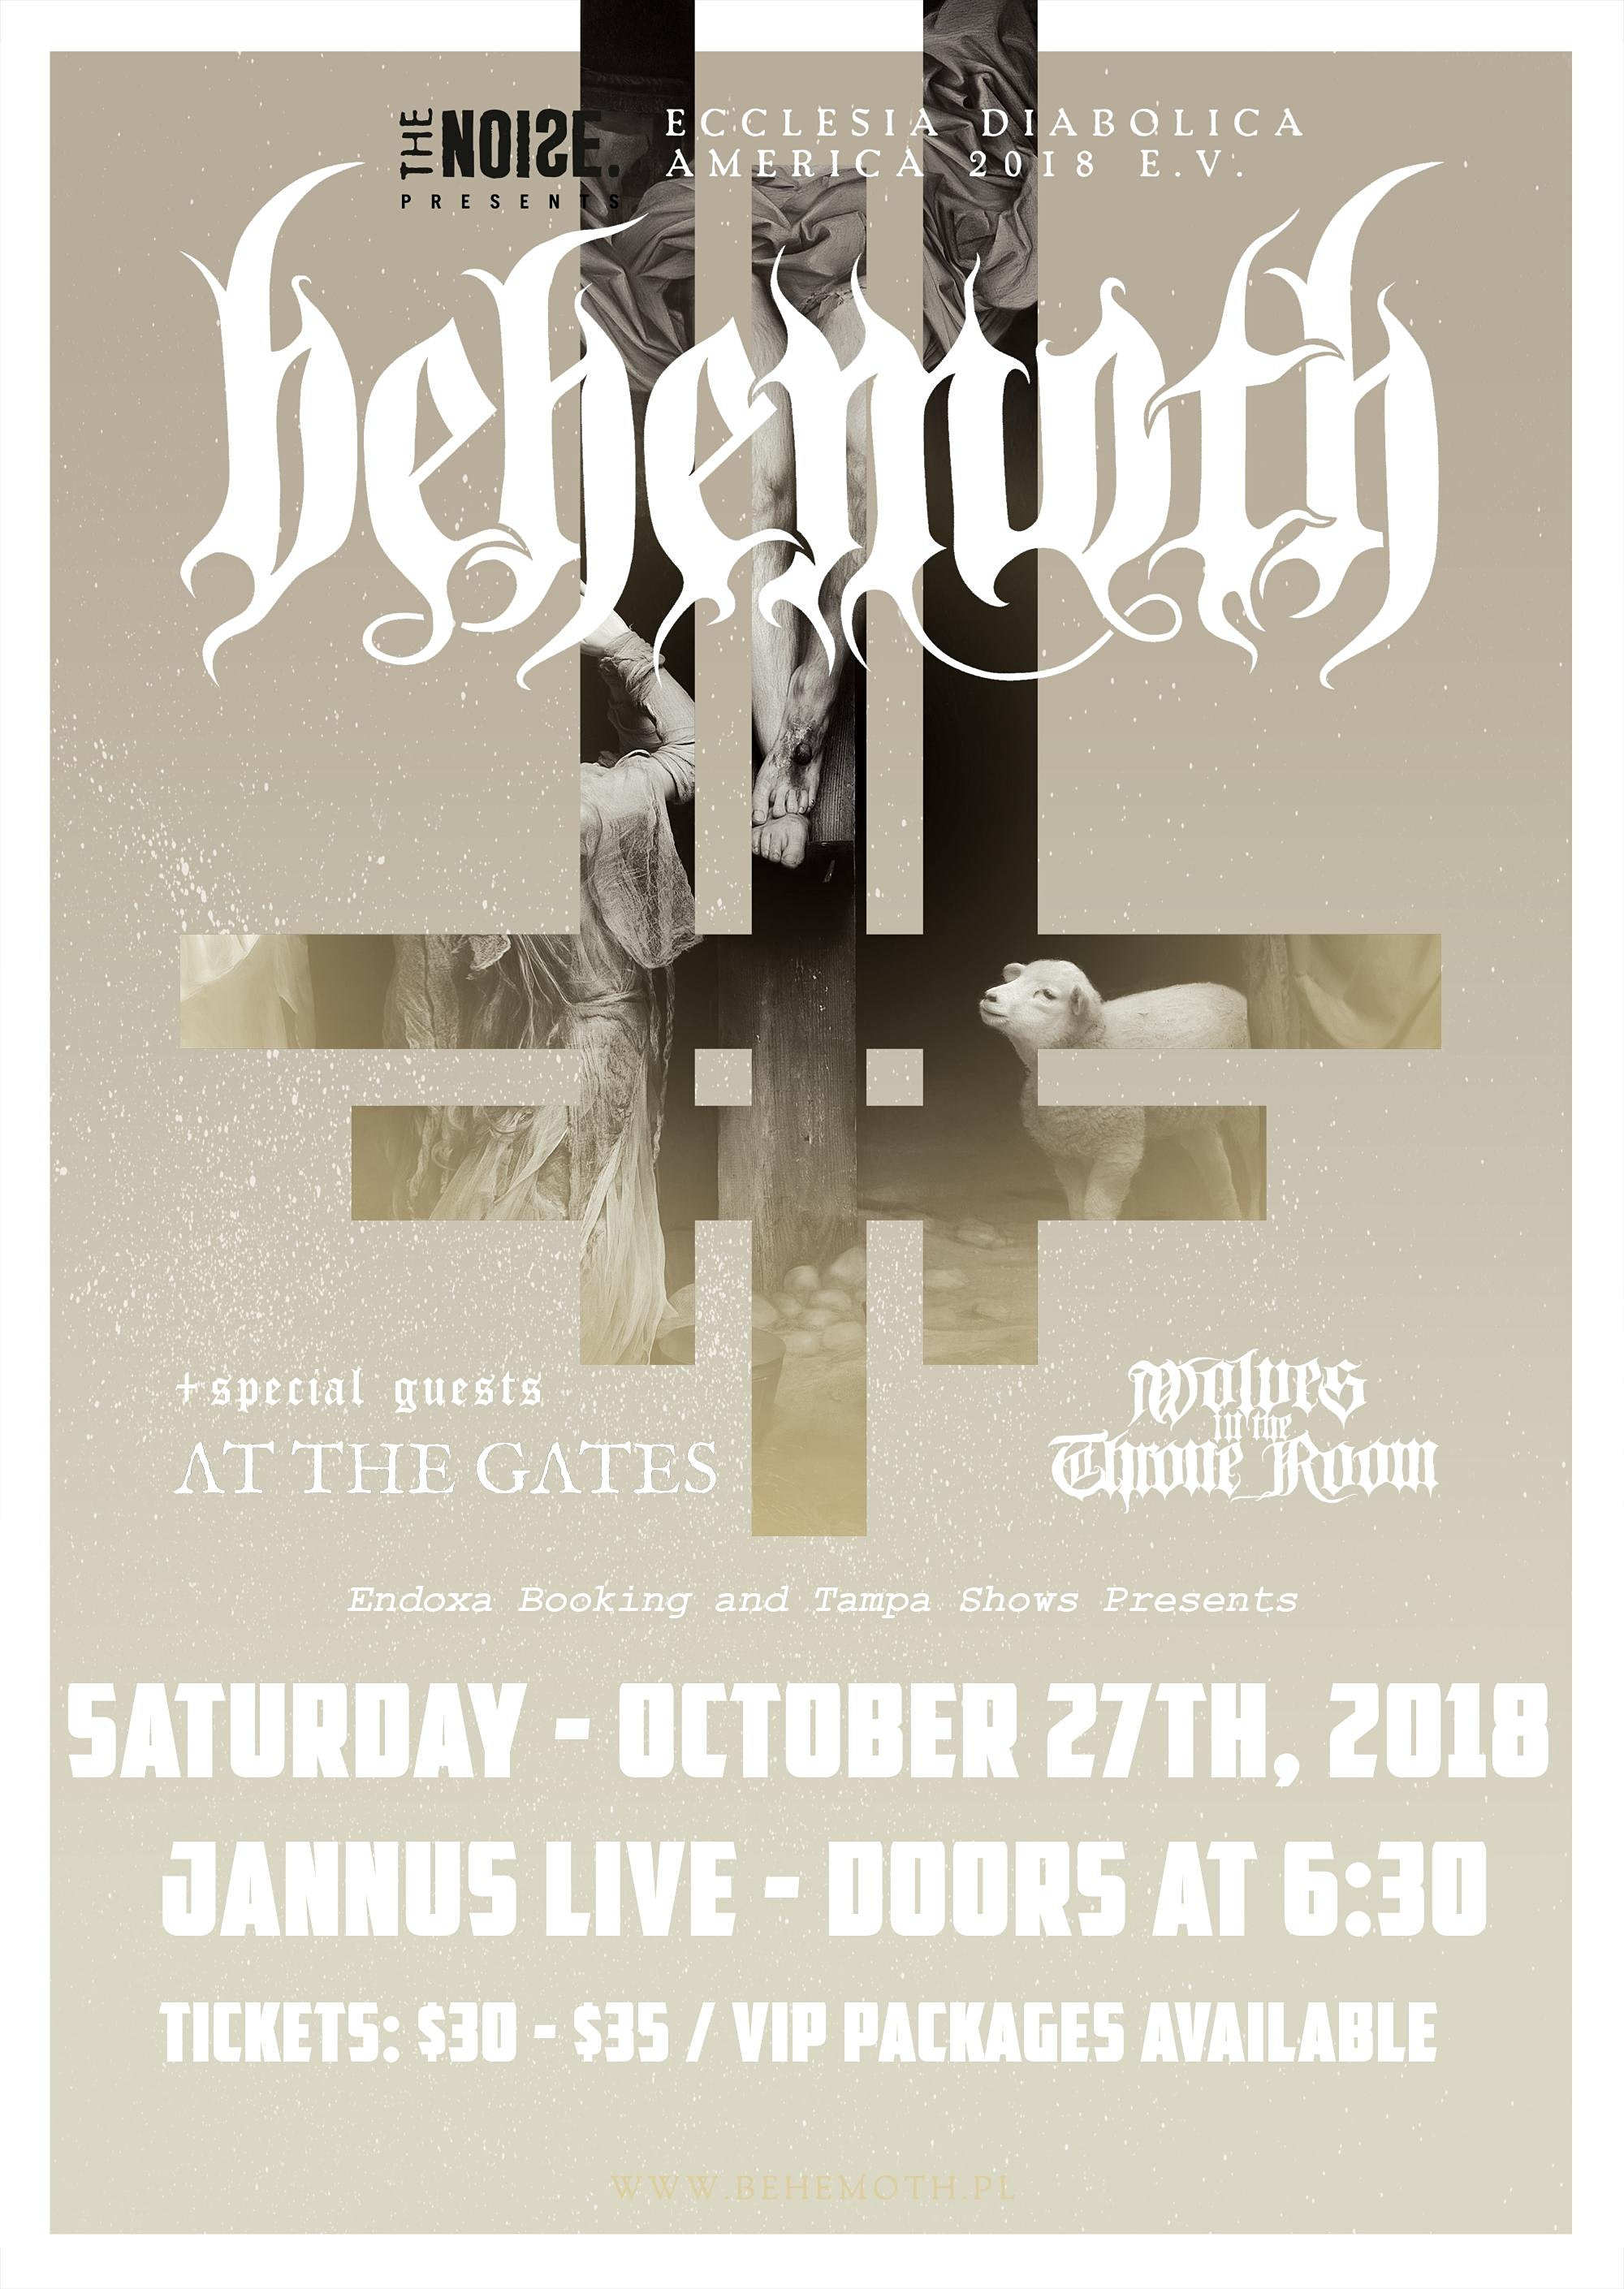 The Noise Presents: Behemoth